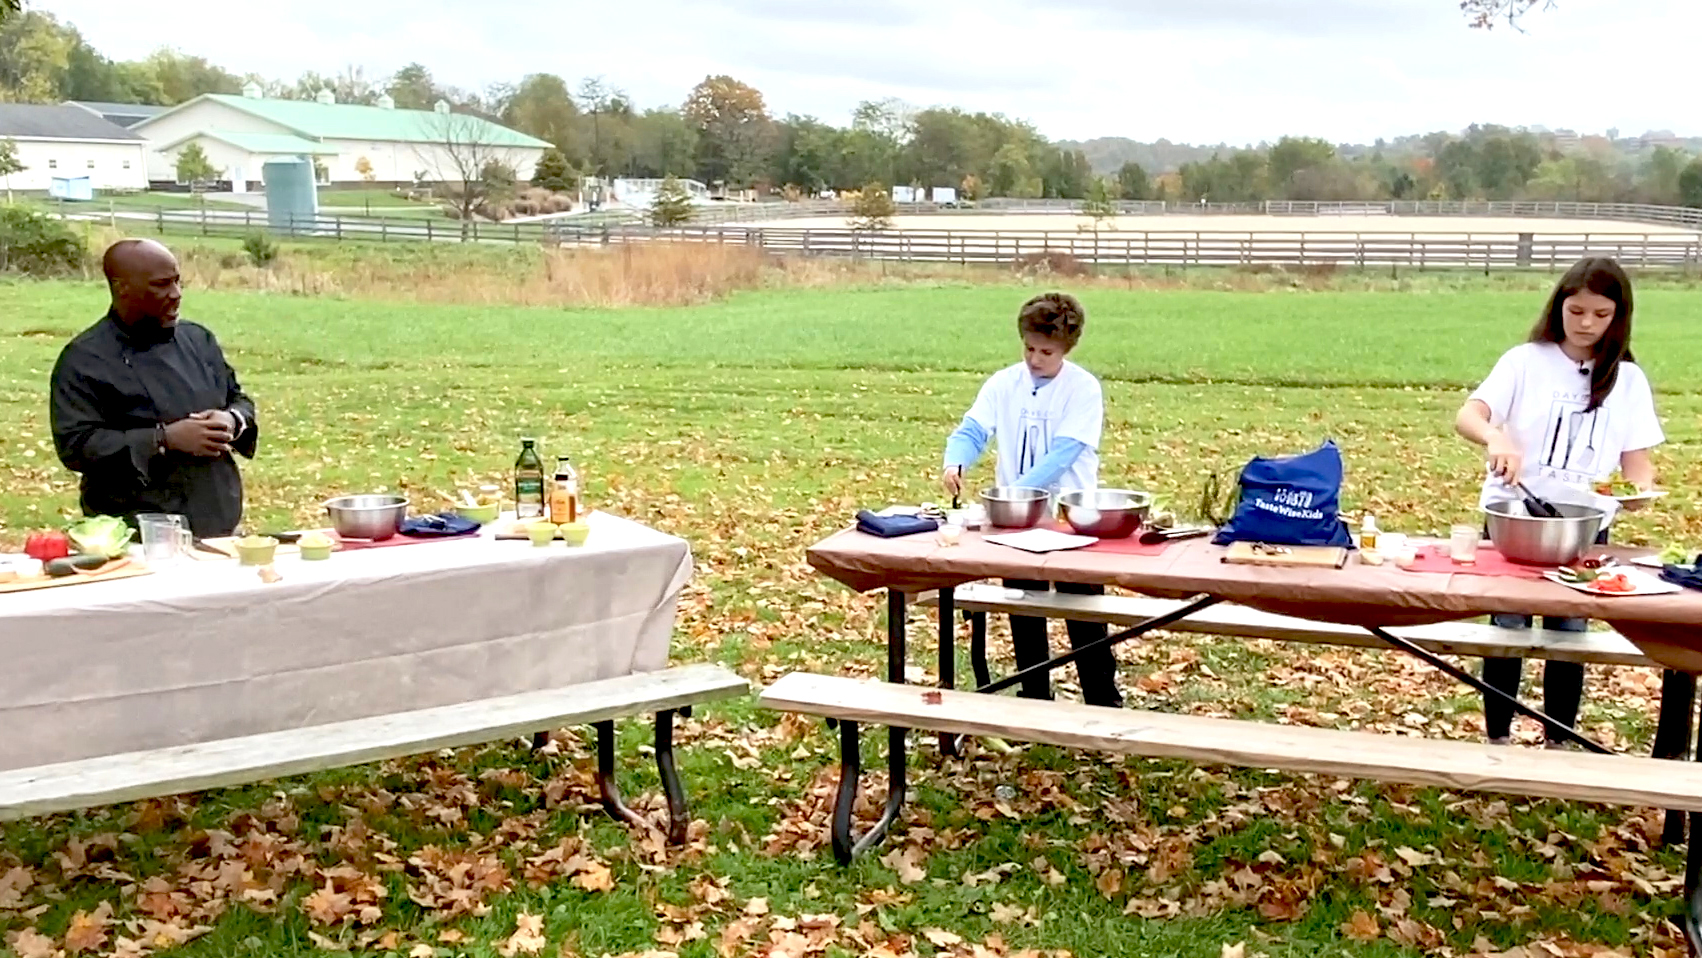 people at picnic tables preparing food